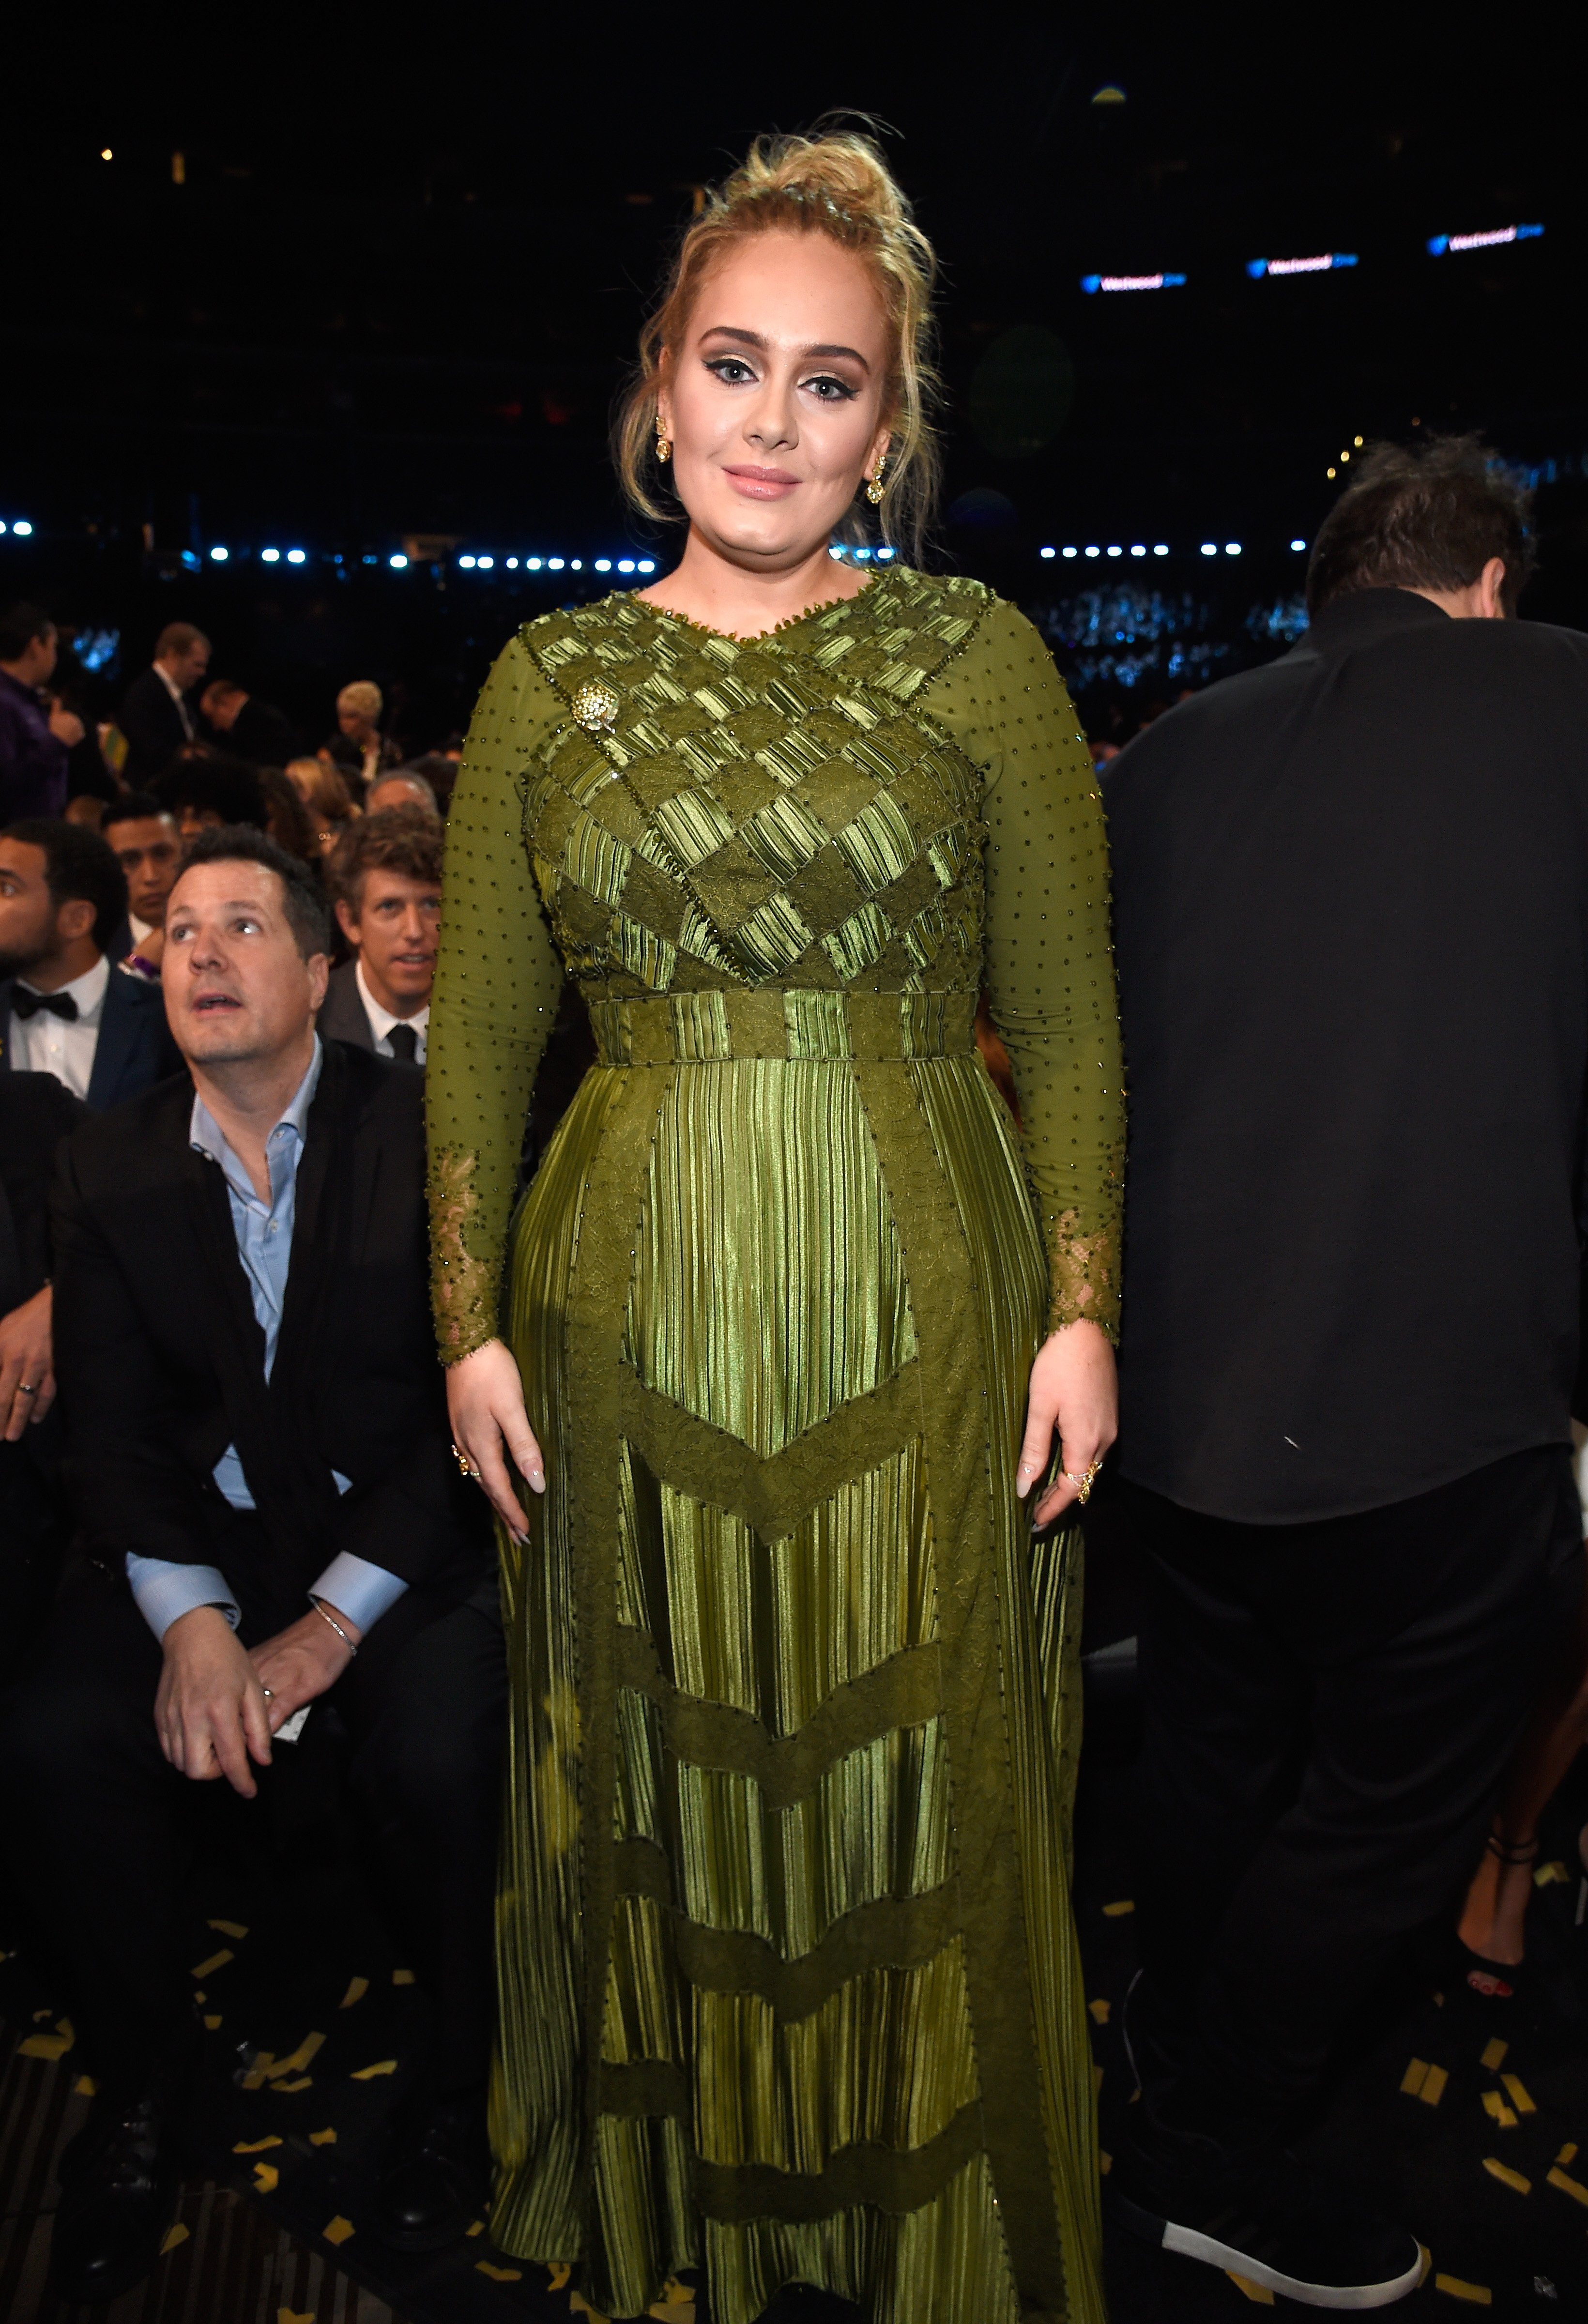 Image Credit: Getty Images / Adele at an event.